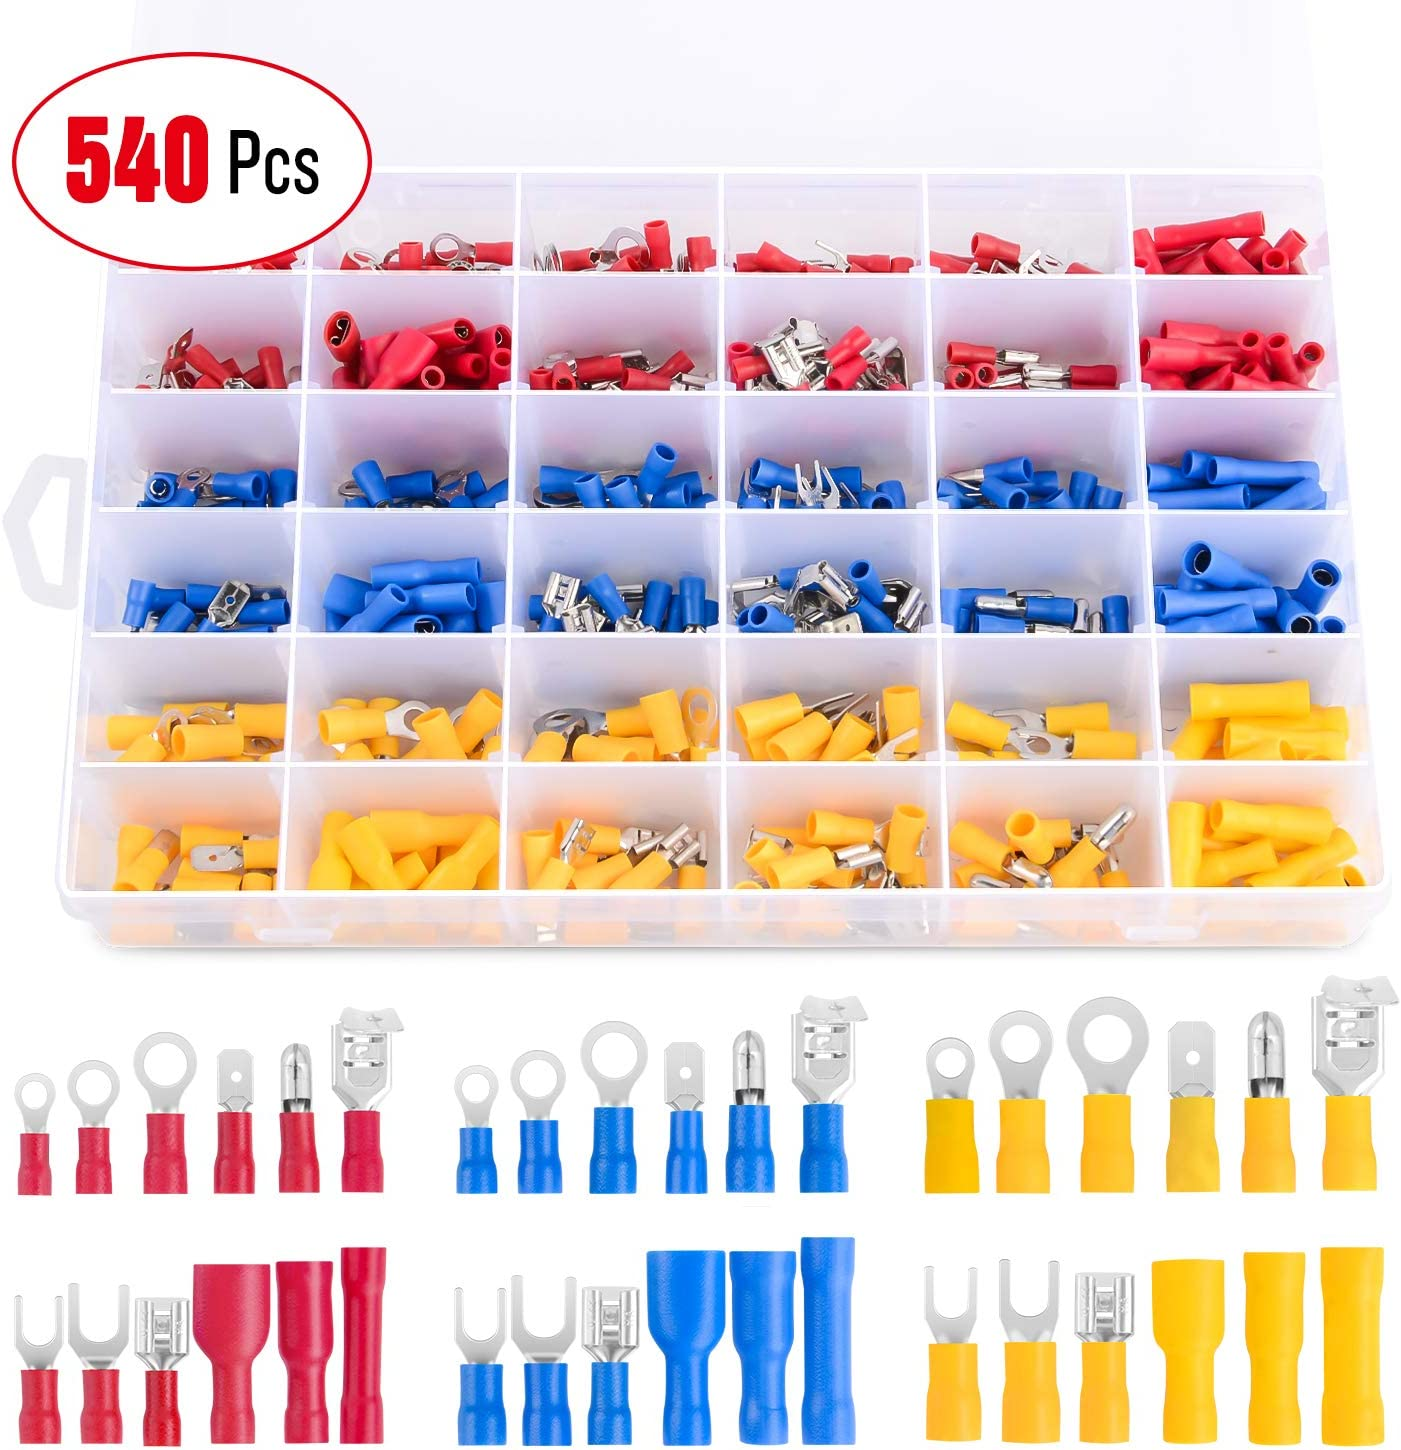 2 Years Warranty Nilight 540PCS Mixed Quick Disconnect Electrical Insulated Butt Bullet Spade Fork Ring Solderless Crimp Terminals 22-16//16-14//12-10 Gauge Electrical Wire Connectors Assortment Kit